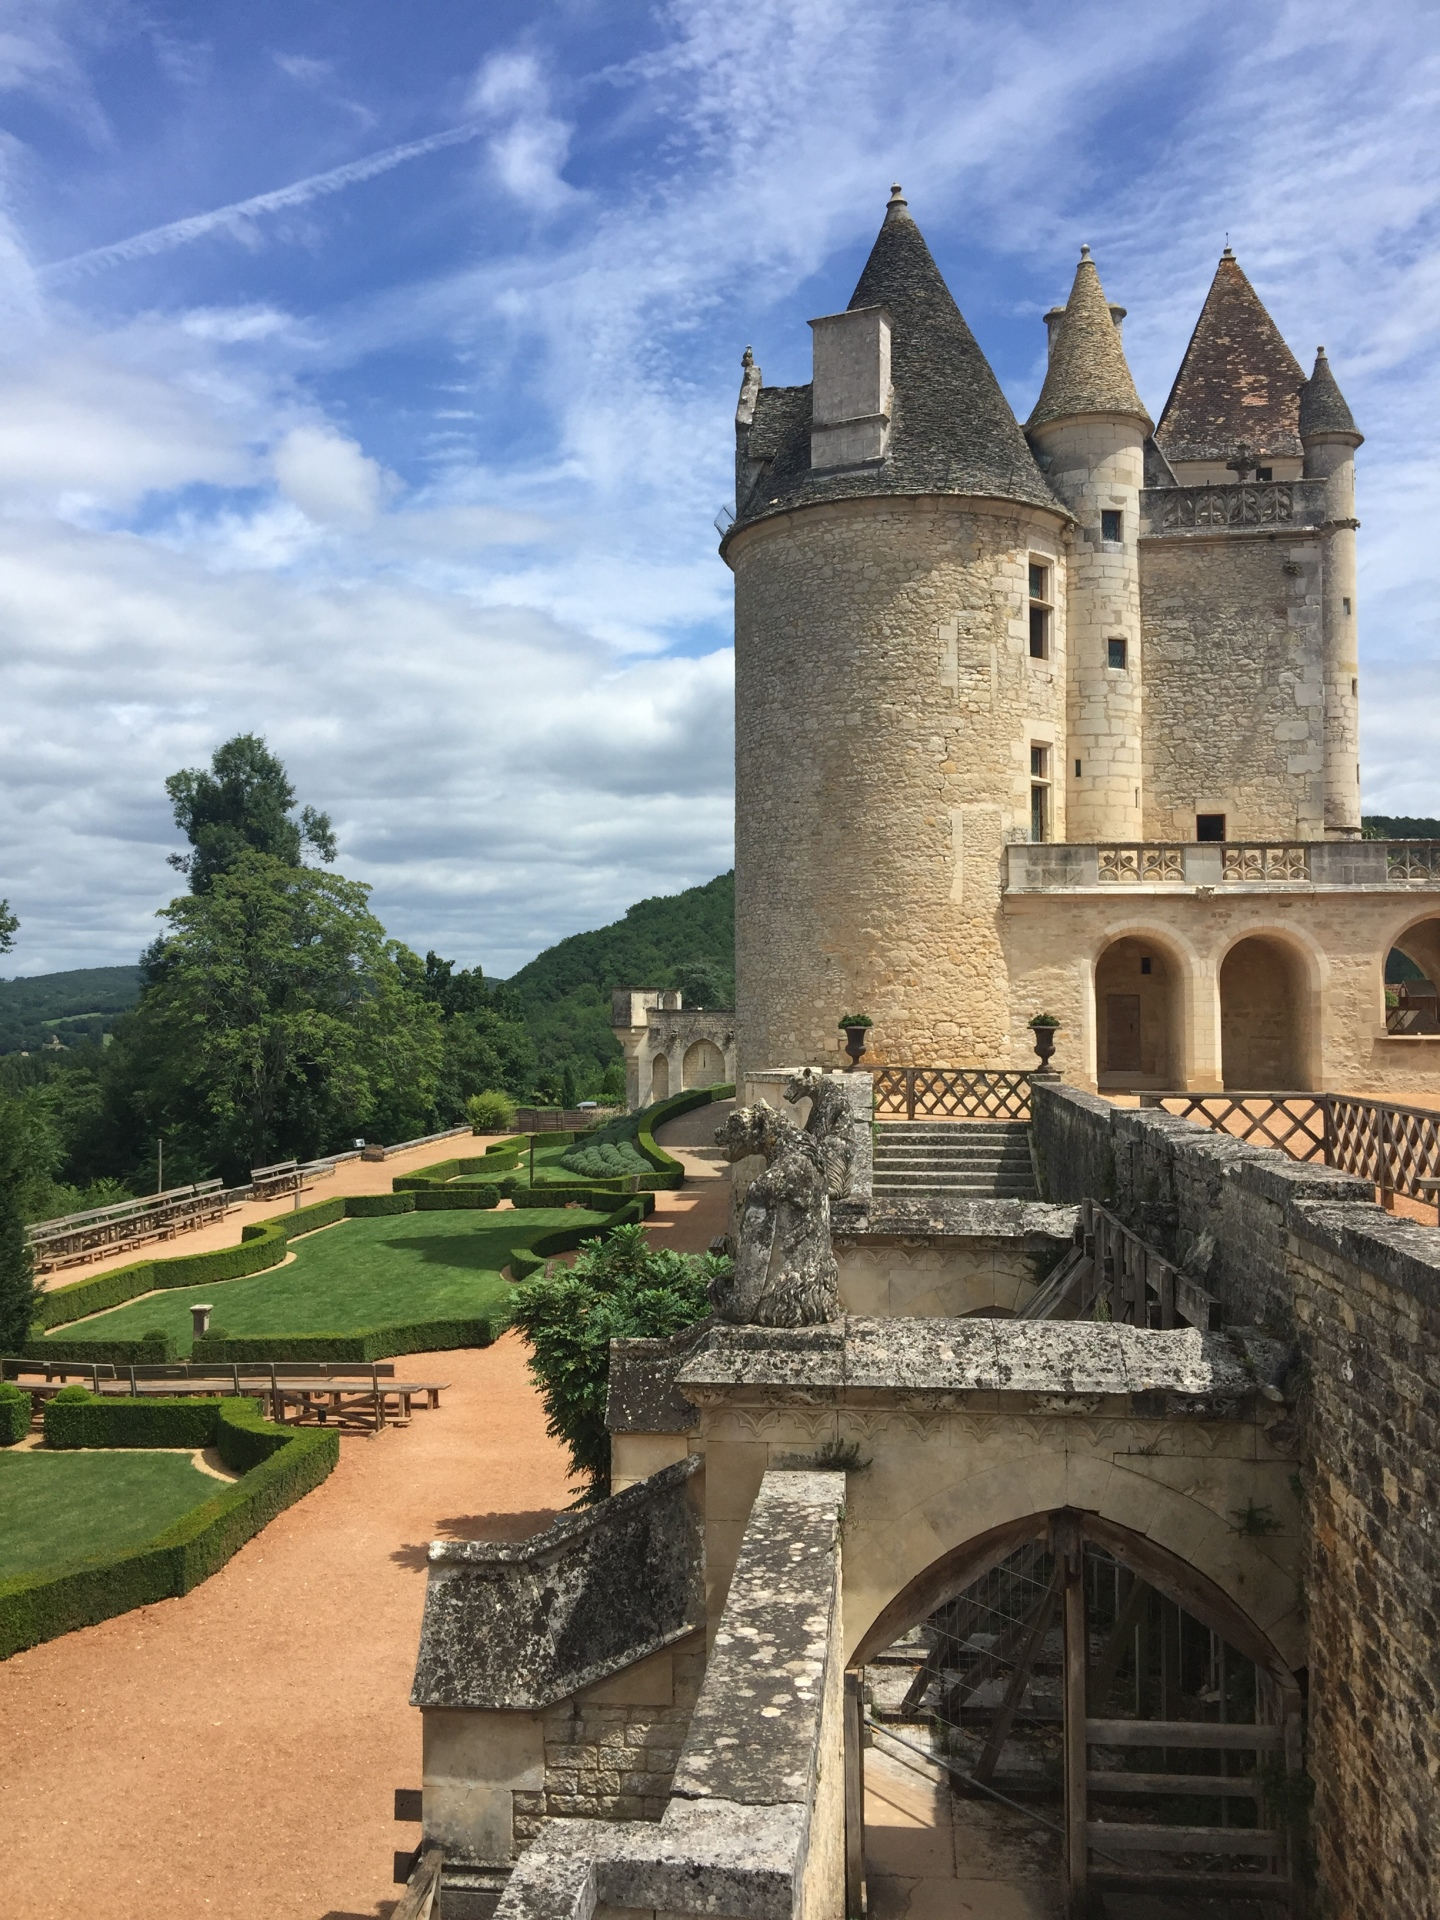 The wonderful Château des Milandes, home of Josephine Baker